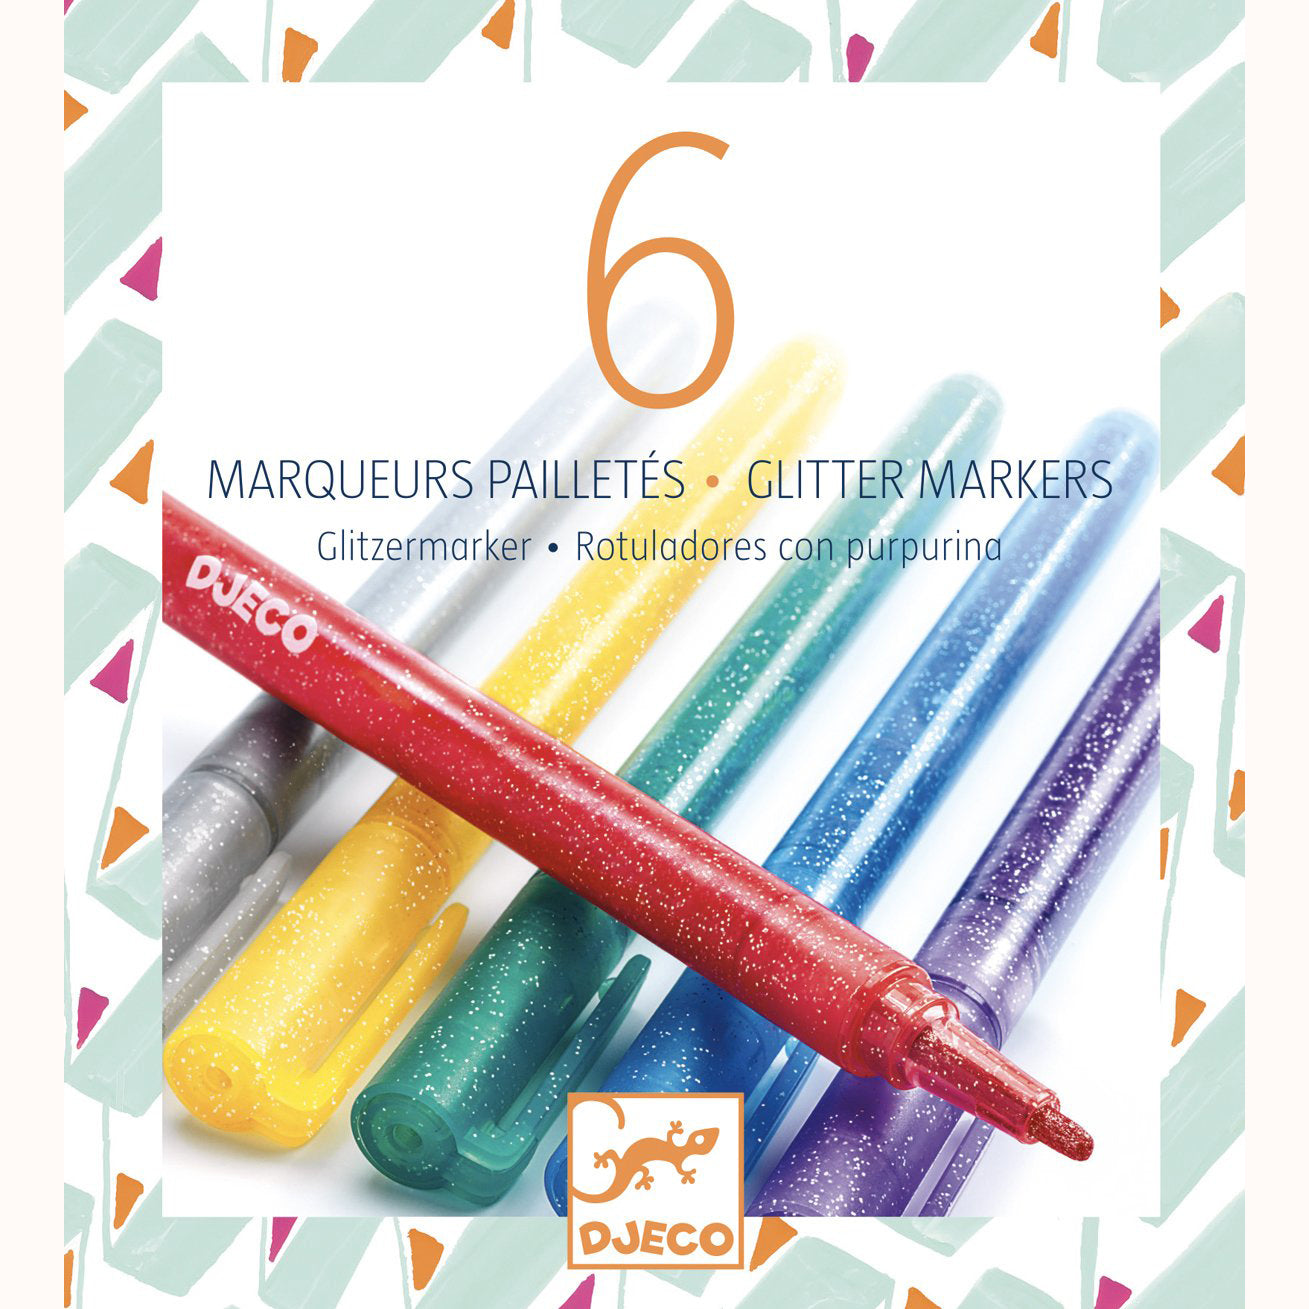 6 Glitter Markers by Djeco, boxed